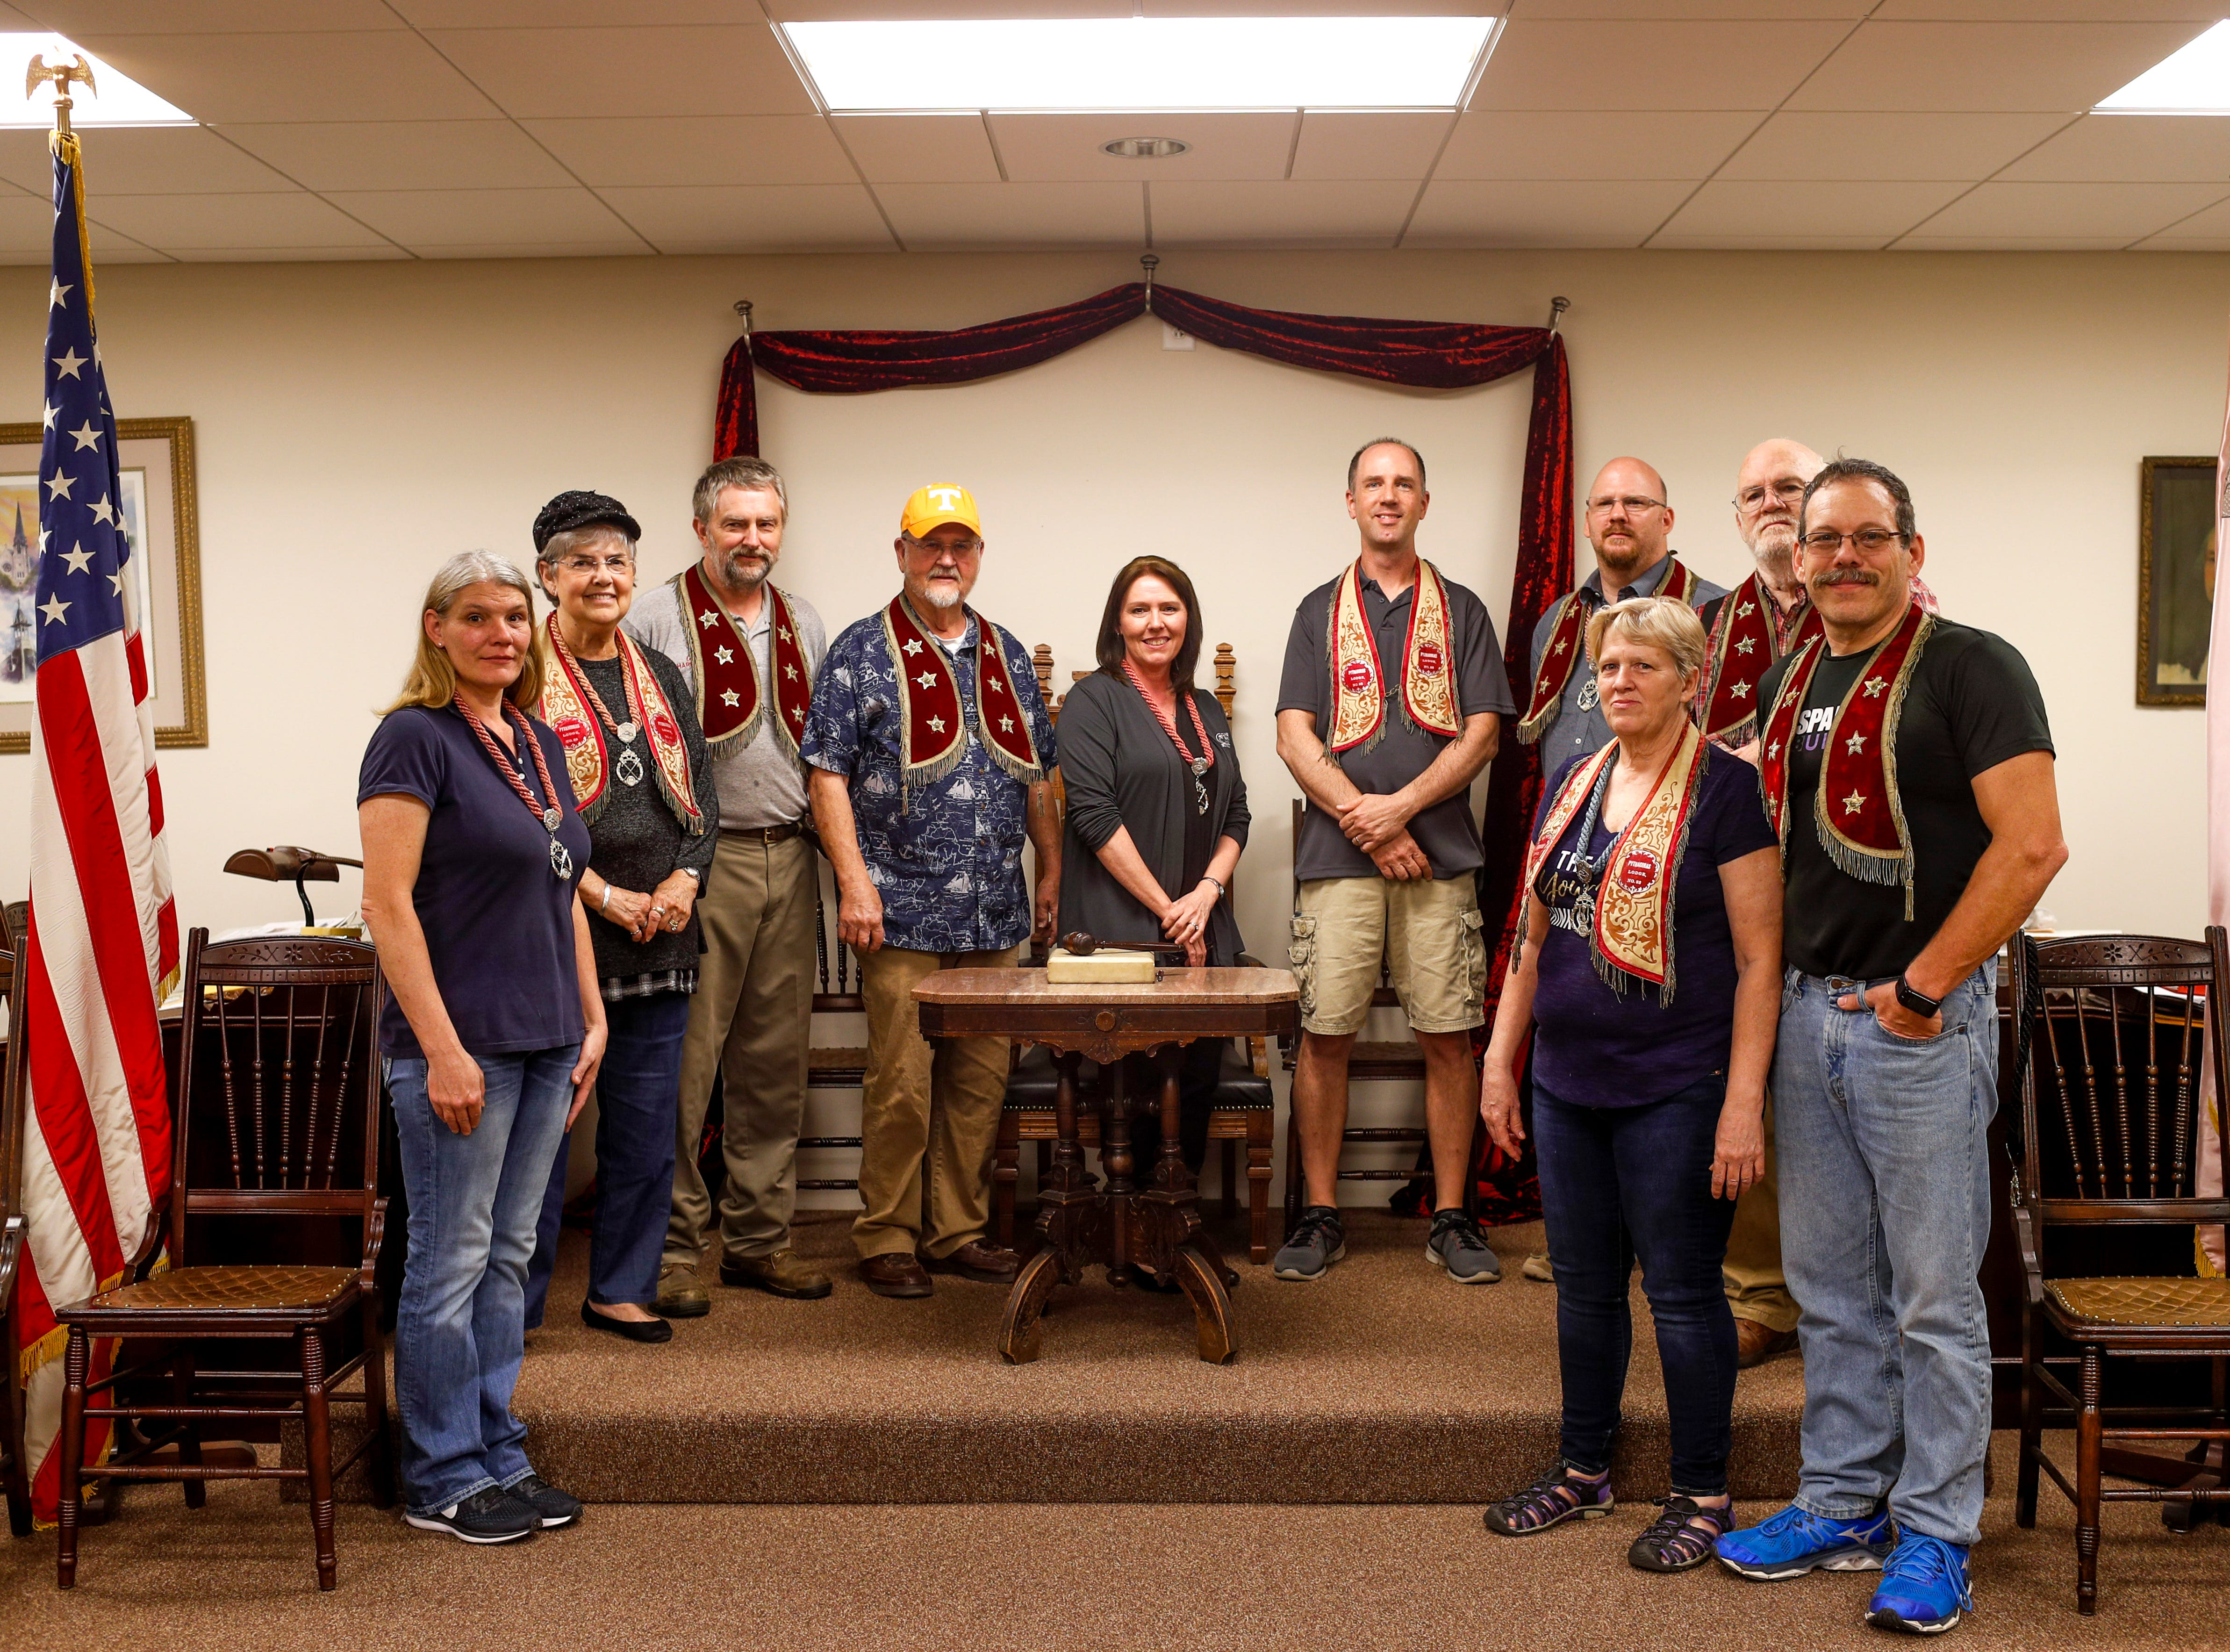 Members of the Clarksville lodge stand in the meeting hall for a portrait at Odd Fellow Lodge in Clarksville, Tenn., on Tuesday, April 23, 2019.